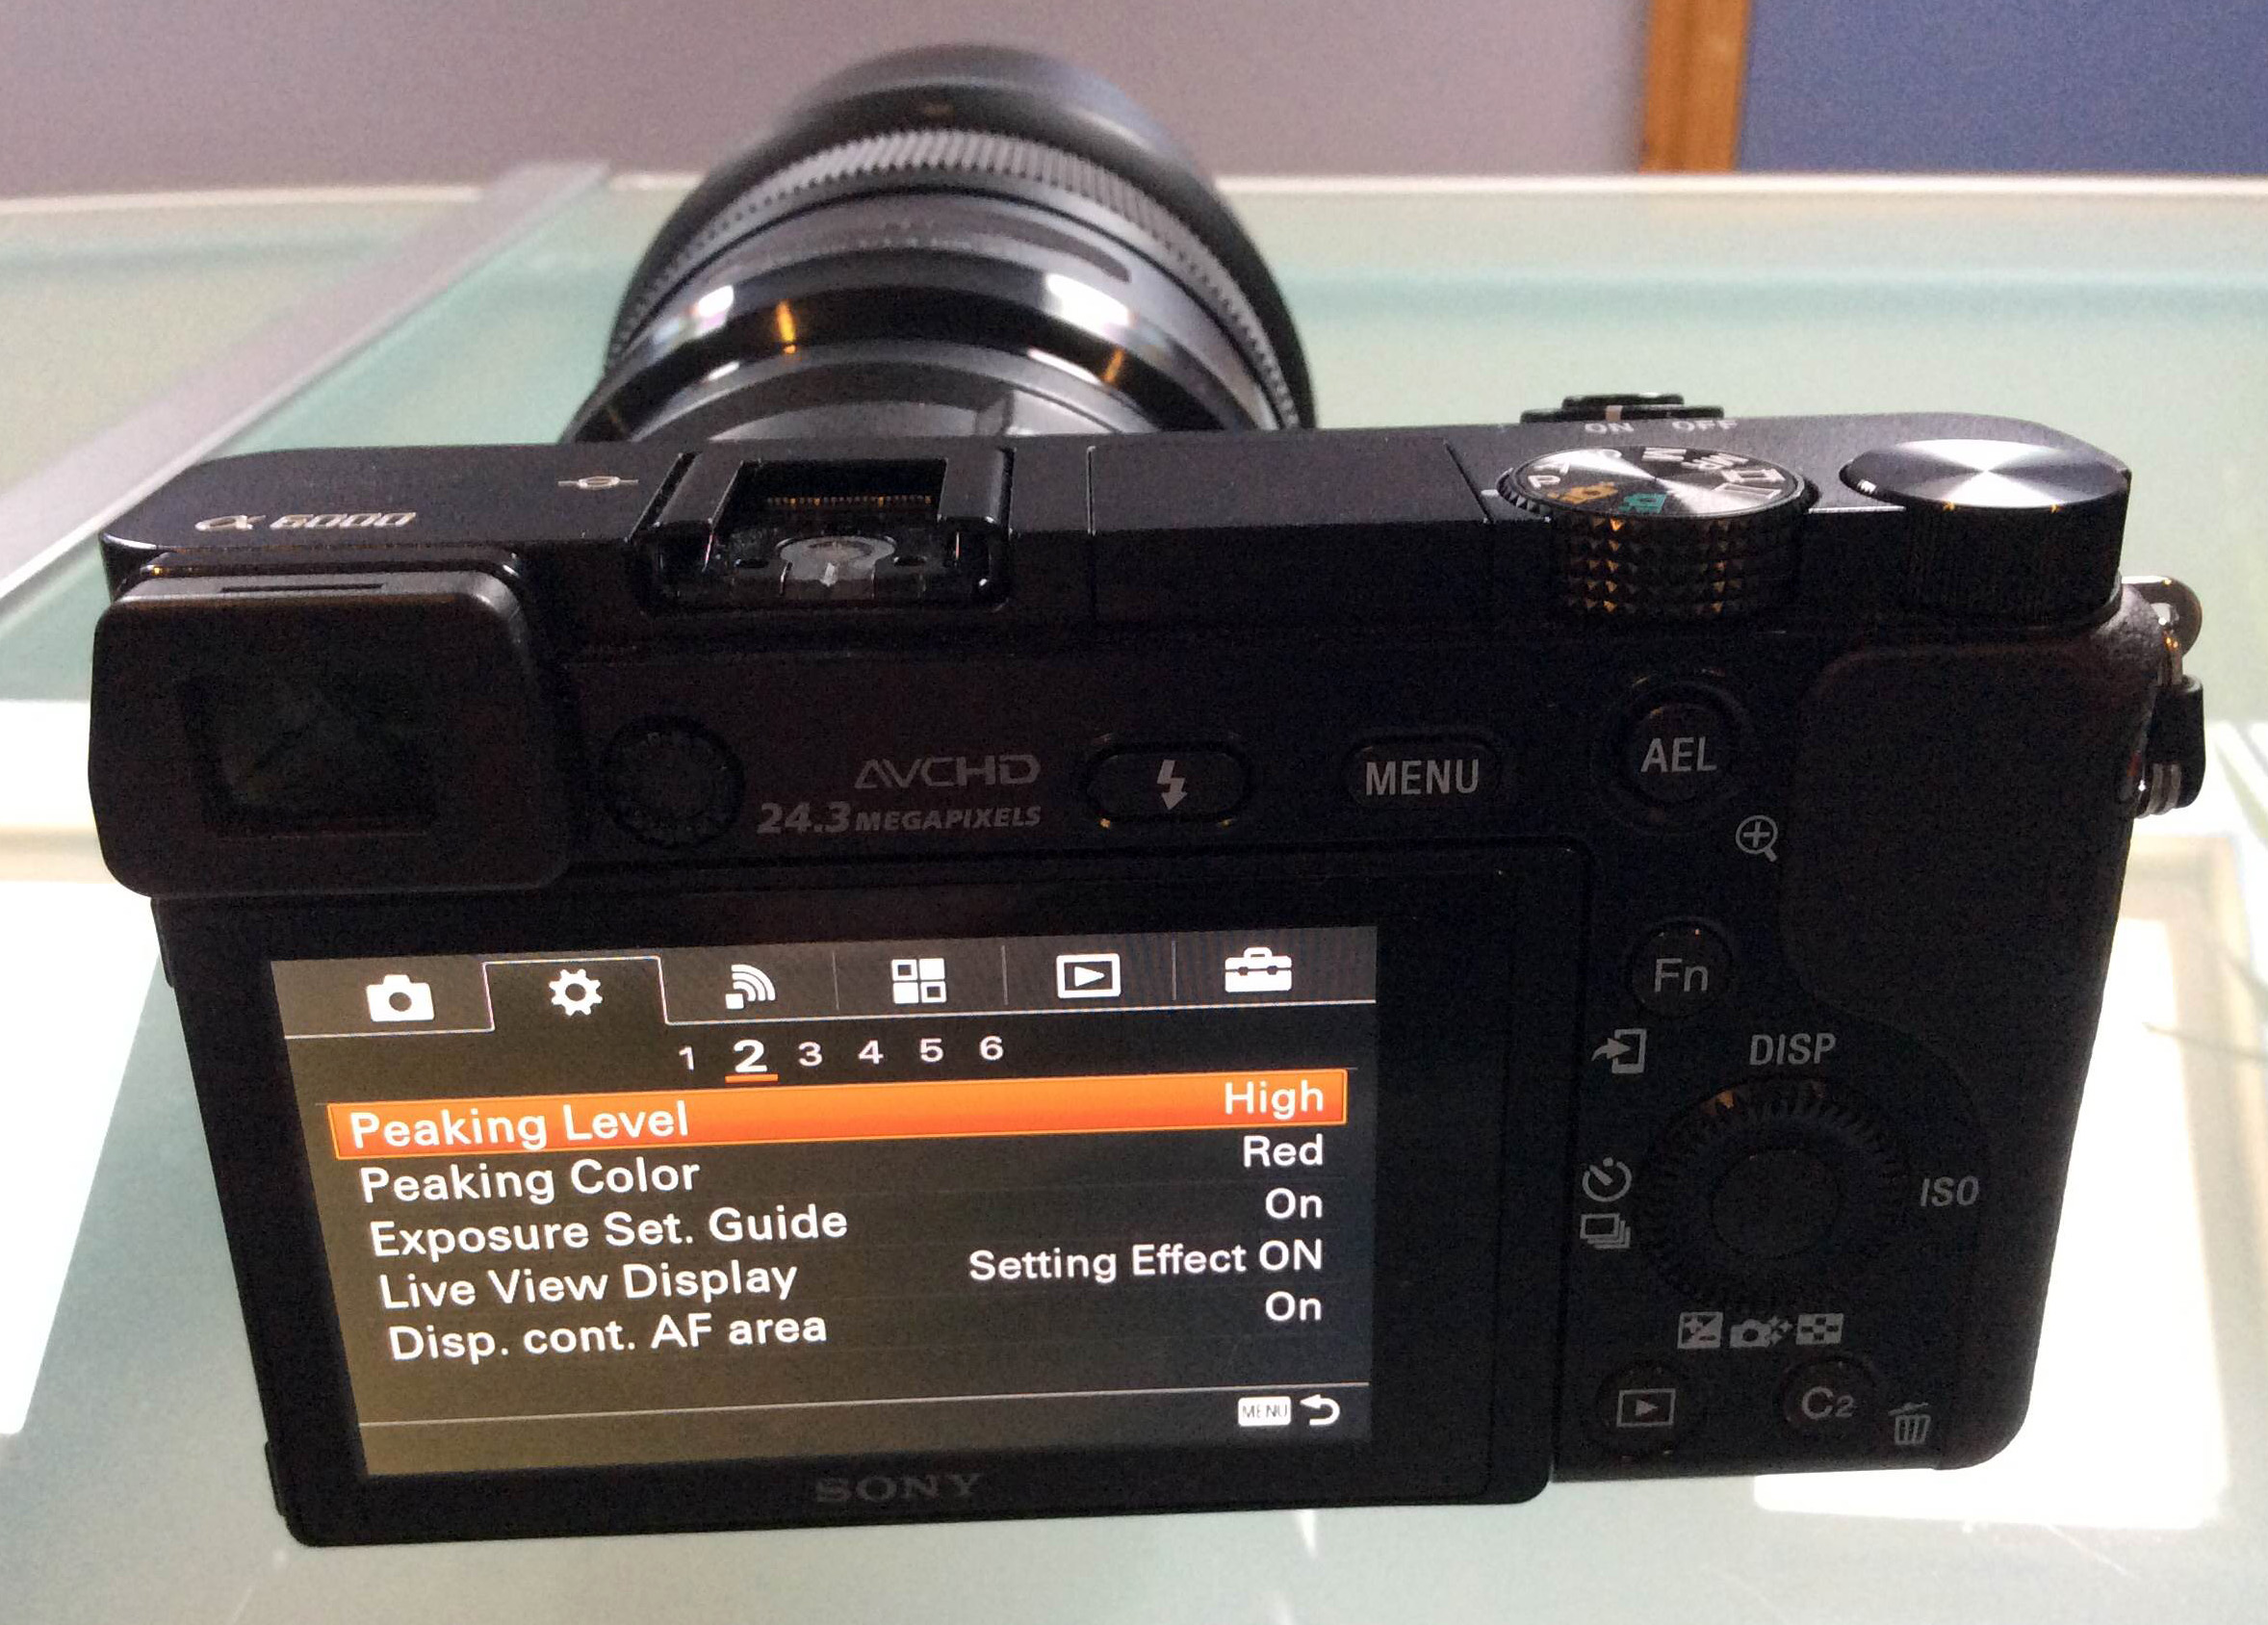 Sony a6000, Sigma 35mm F1.4 DG HSM a-mount lens for Sony